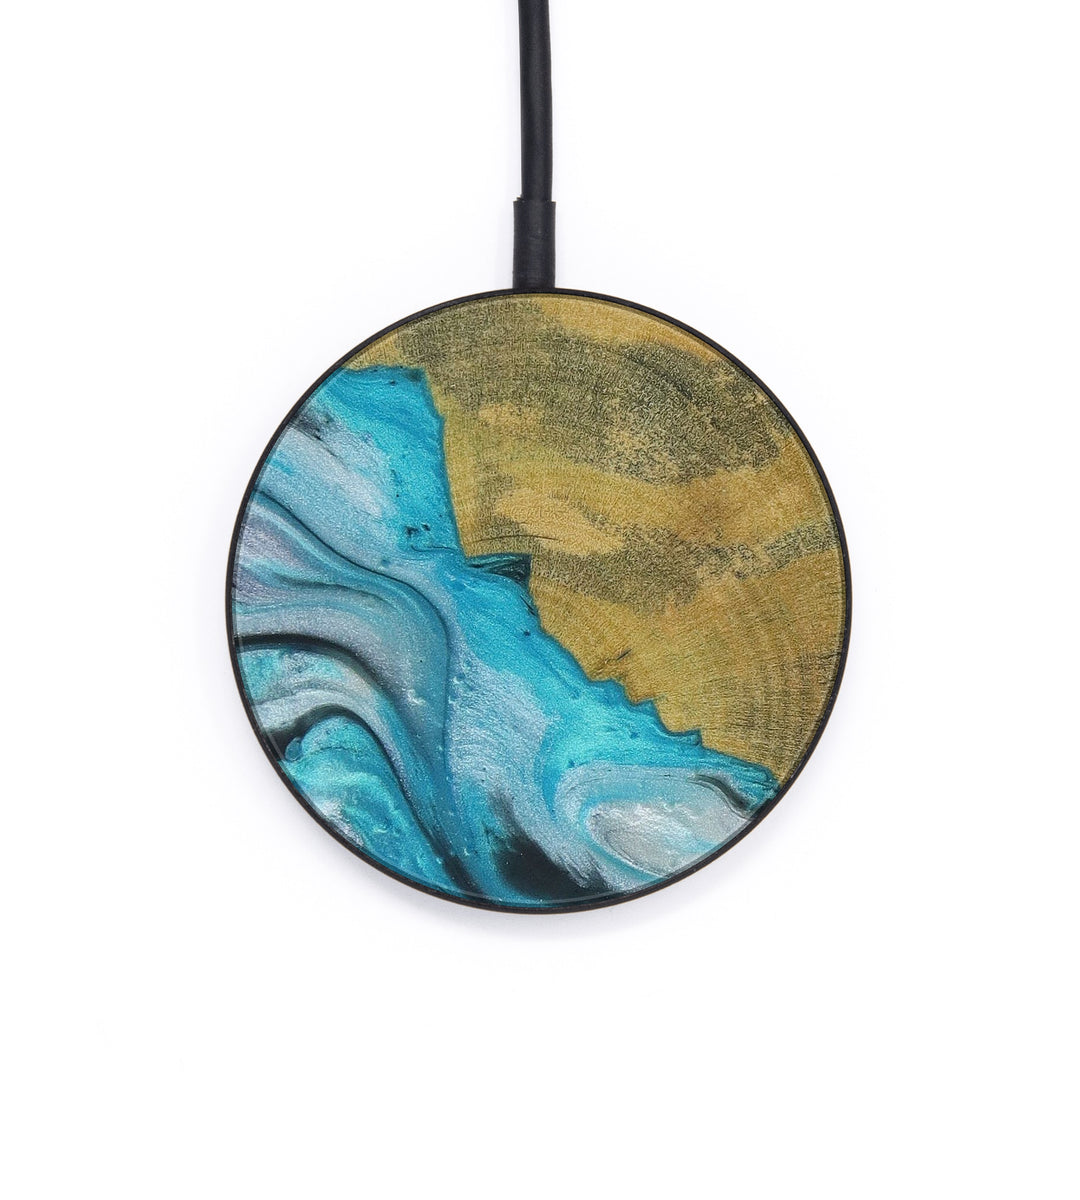 Circle Wood+Resin Wireless Charger - Blakelee (Light Blue, 426401)